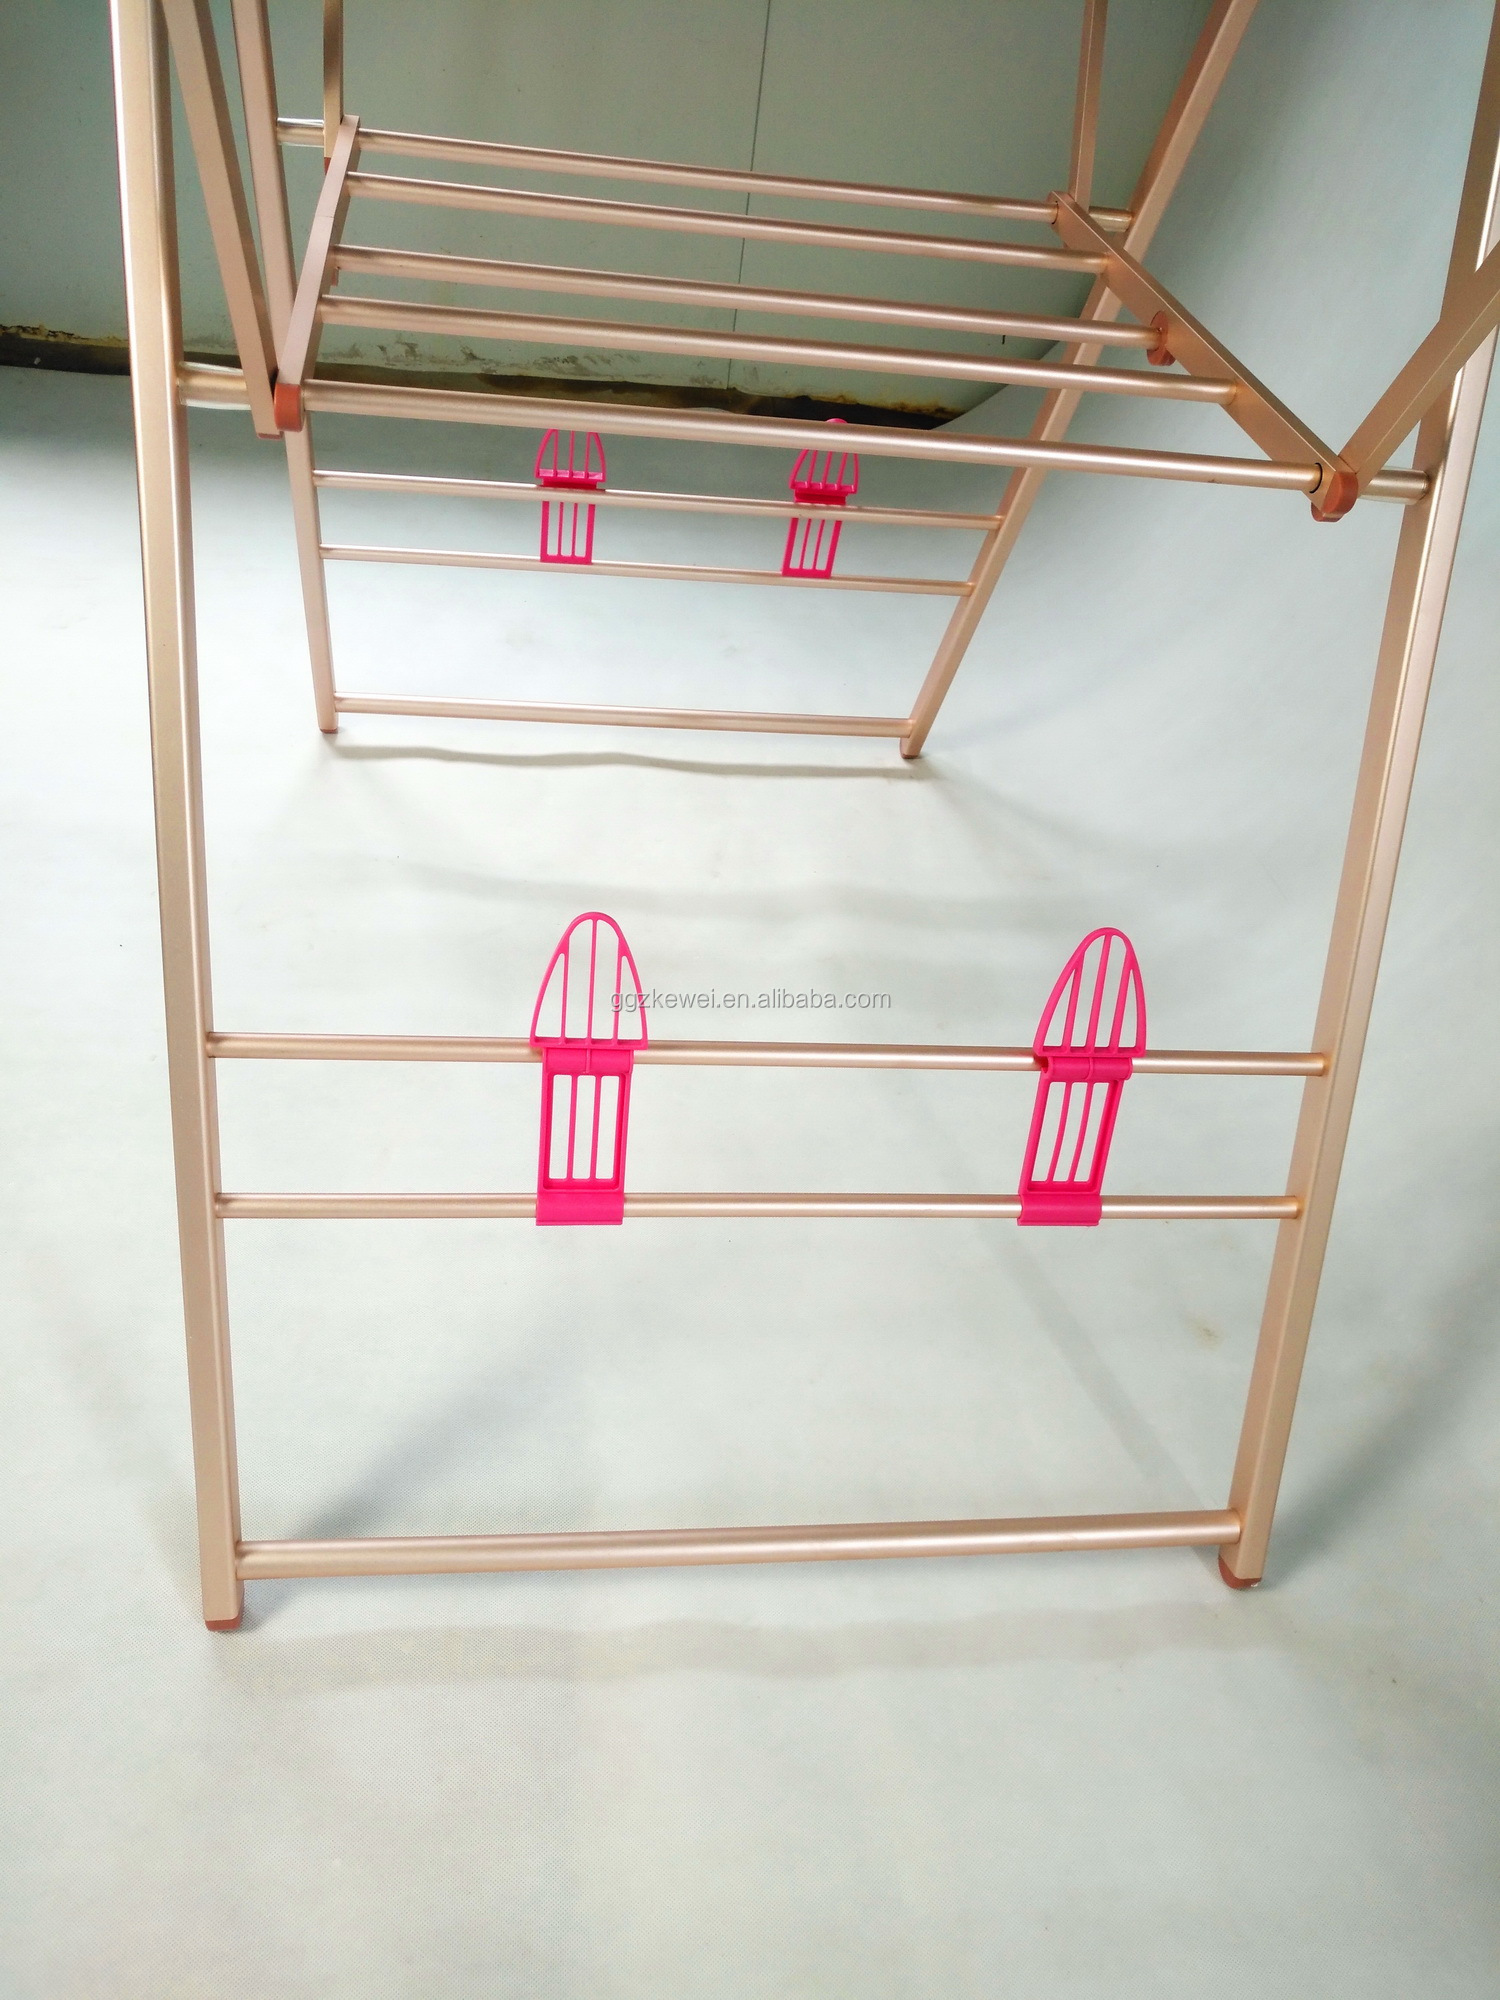 Aluminium Floor Folding  Clothes Drying Rack In Pink With Hangers And  Horseshoe, Manufacture Hotsale Items